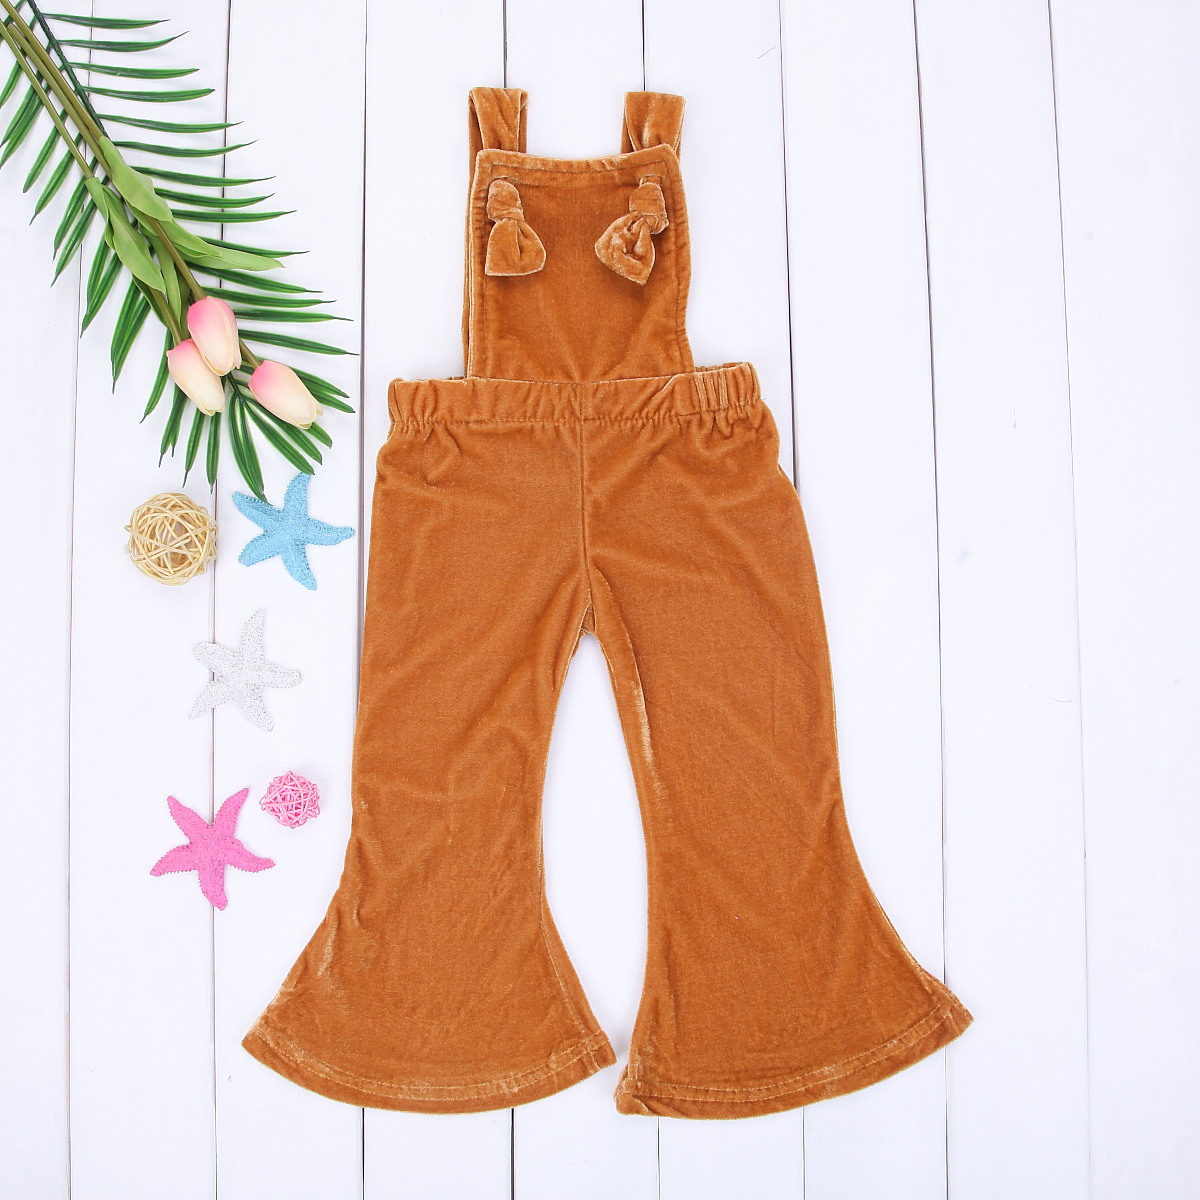 213ca1726ed Cute Toddler Kids Girl Velvet Bib Pants Backless Romper Jumpsuit Square  Collar Flare Pants Outfits Clothes-in Rompers from Mother   Kids on  Aliexpress.com ...